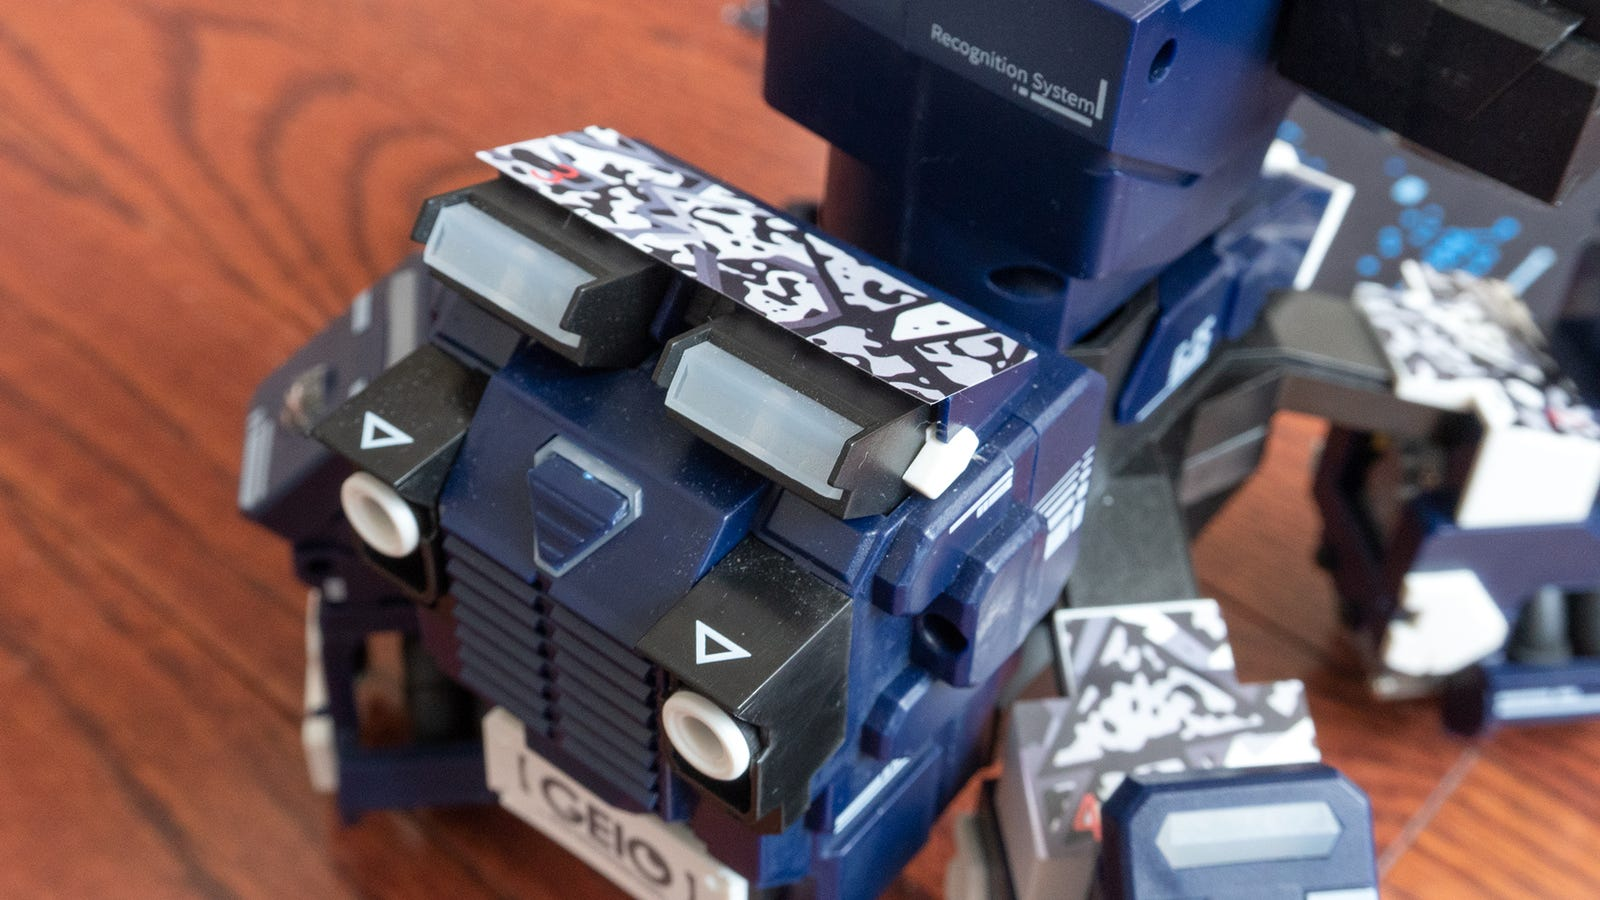 For the AR Mode to work, you also need to cover your robot in tracking marker stickers, which don't always stick that well.